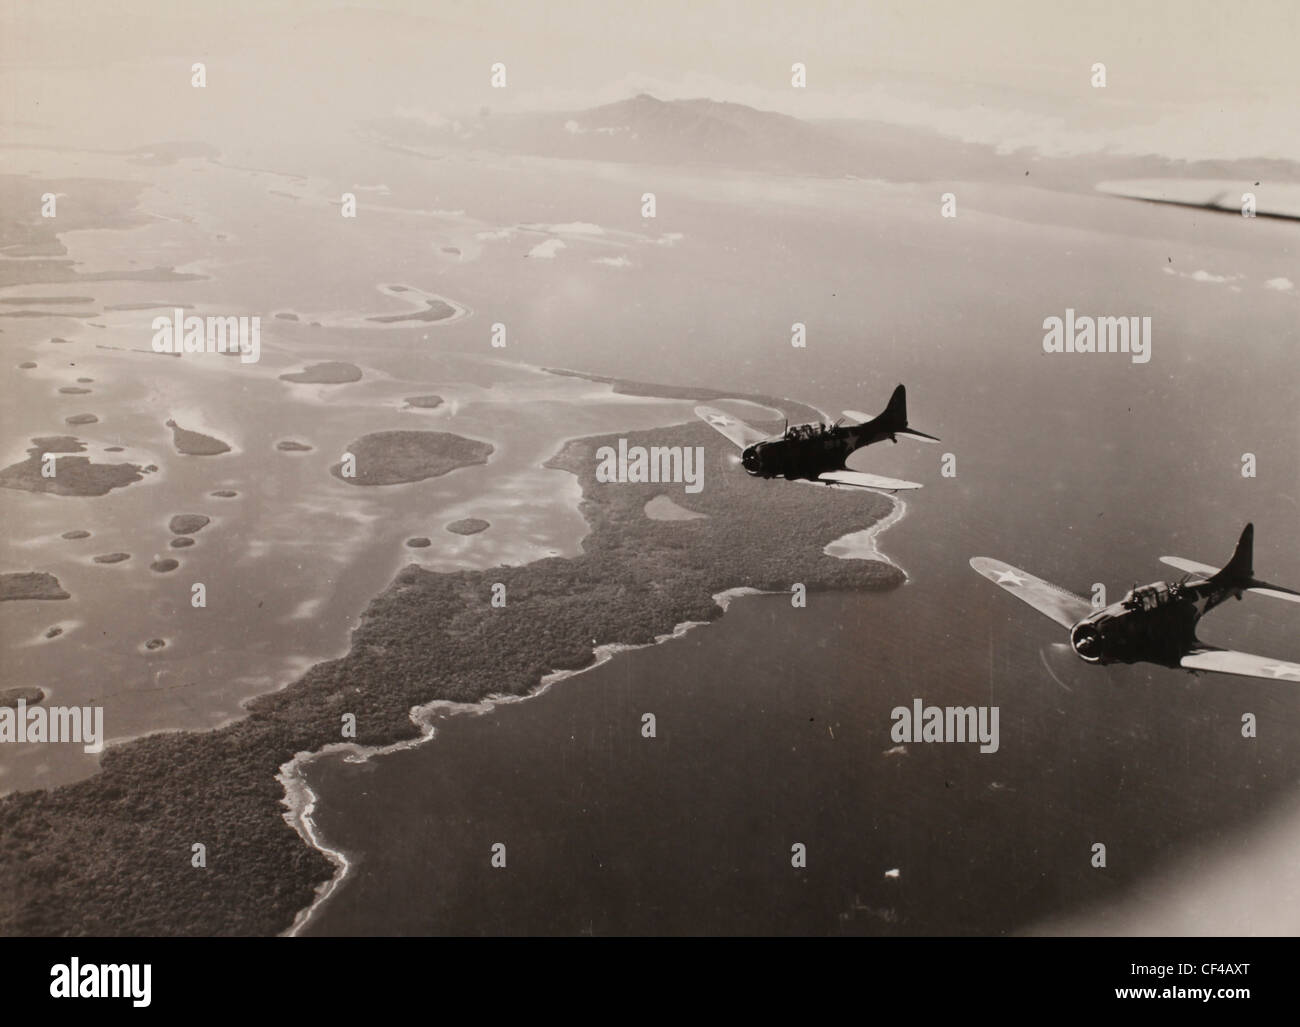 A the bulldog approached the target. Dive bombing mission to Kolombangara, Guadalcana. WWII Pacific campaign Marines - Stock Image